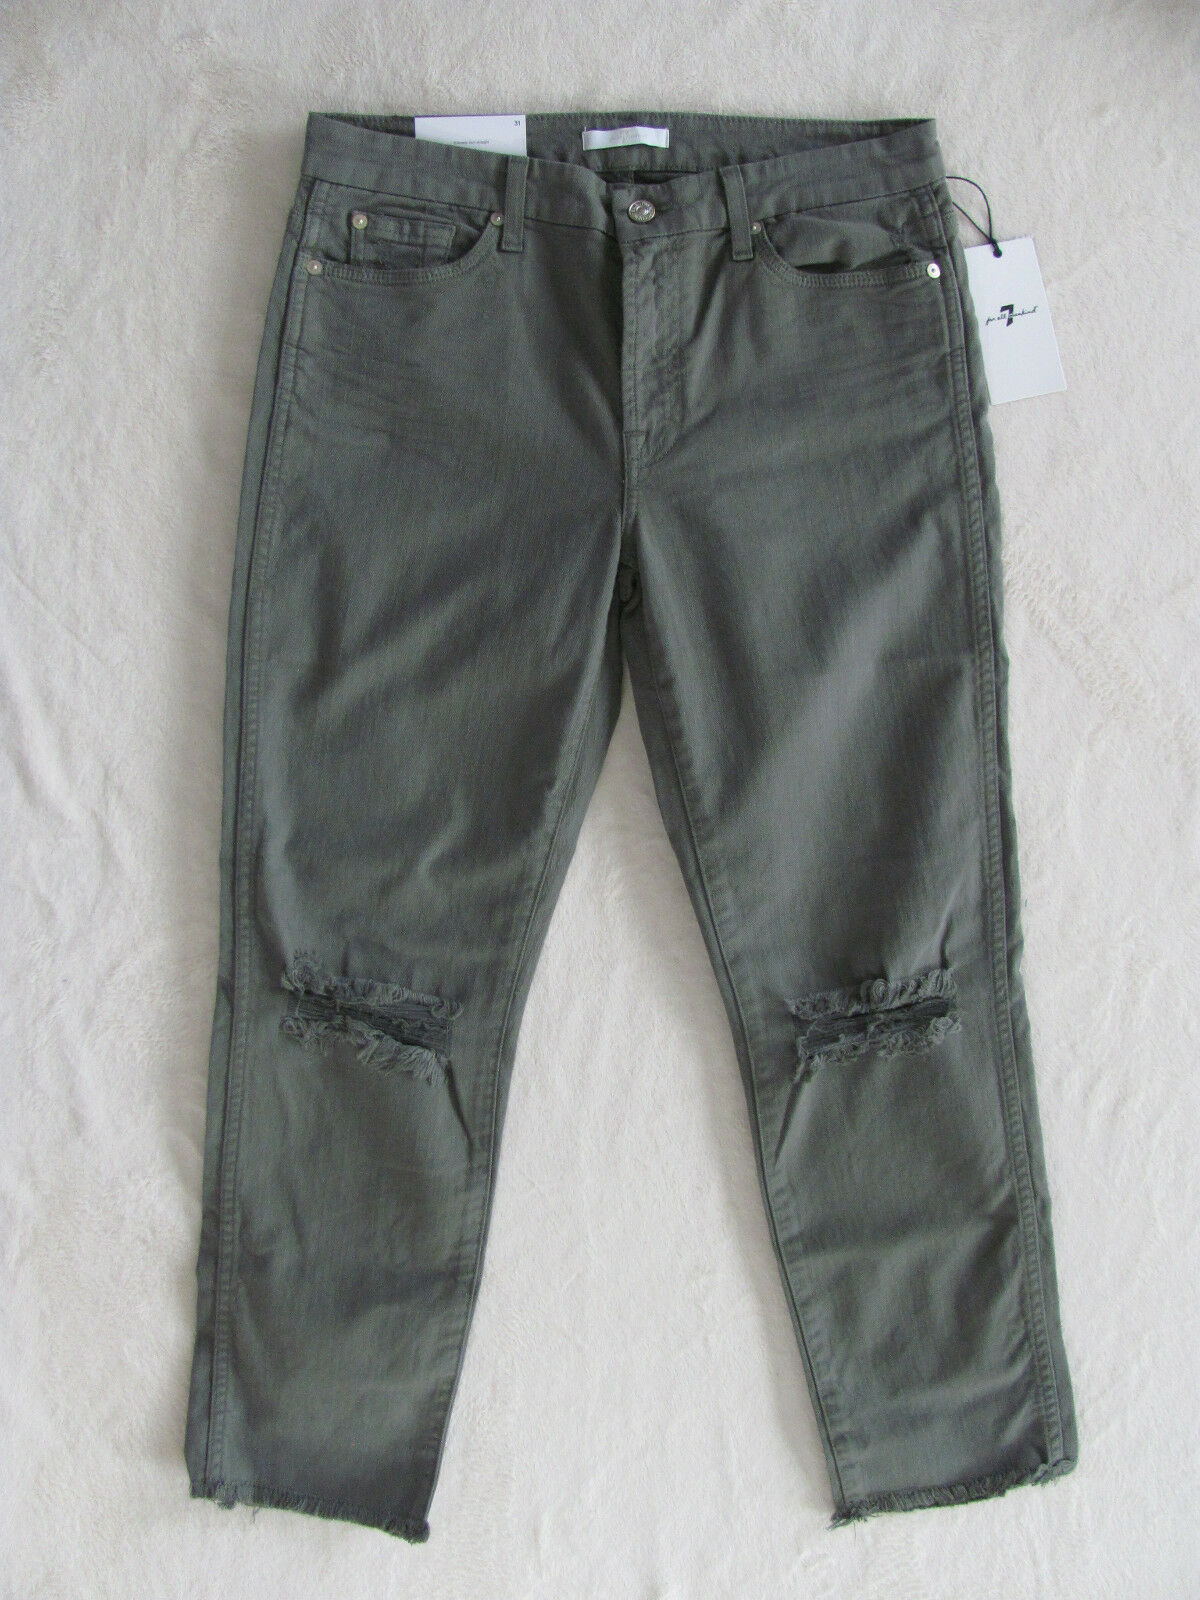 7 for all Mankind Ankle Slim Straight Jeans-Destroyd-Moss Green-Size 31-NWT